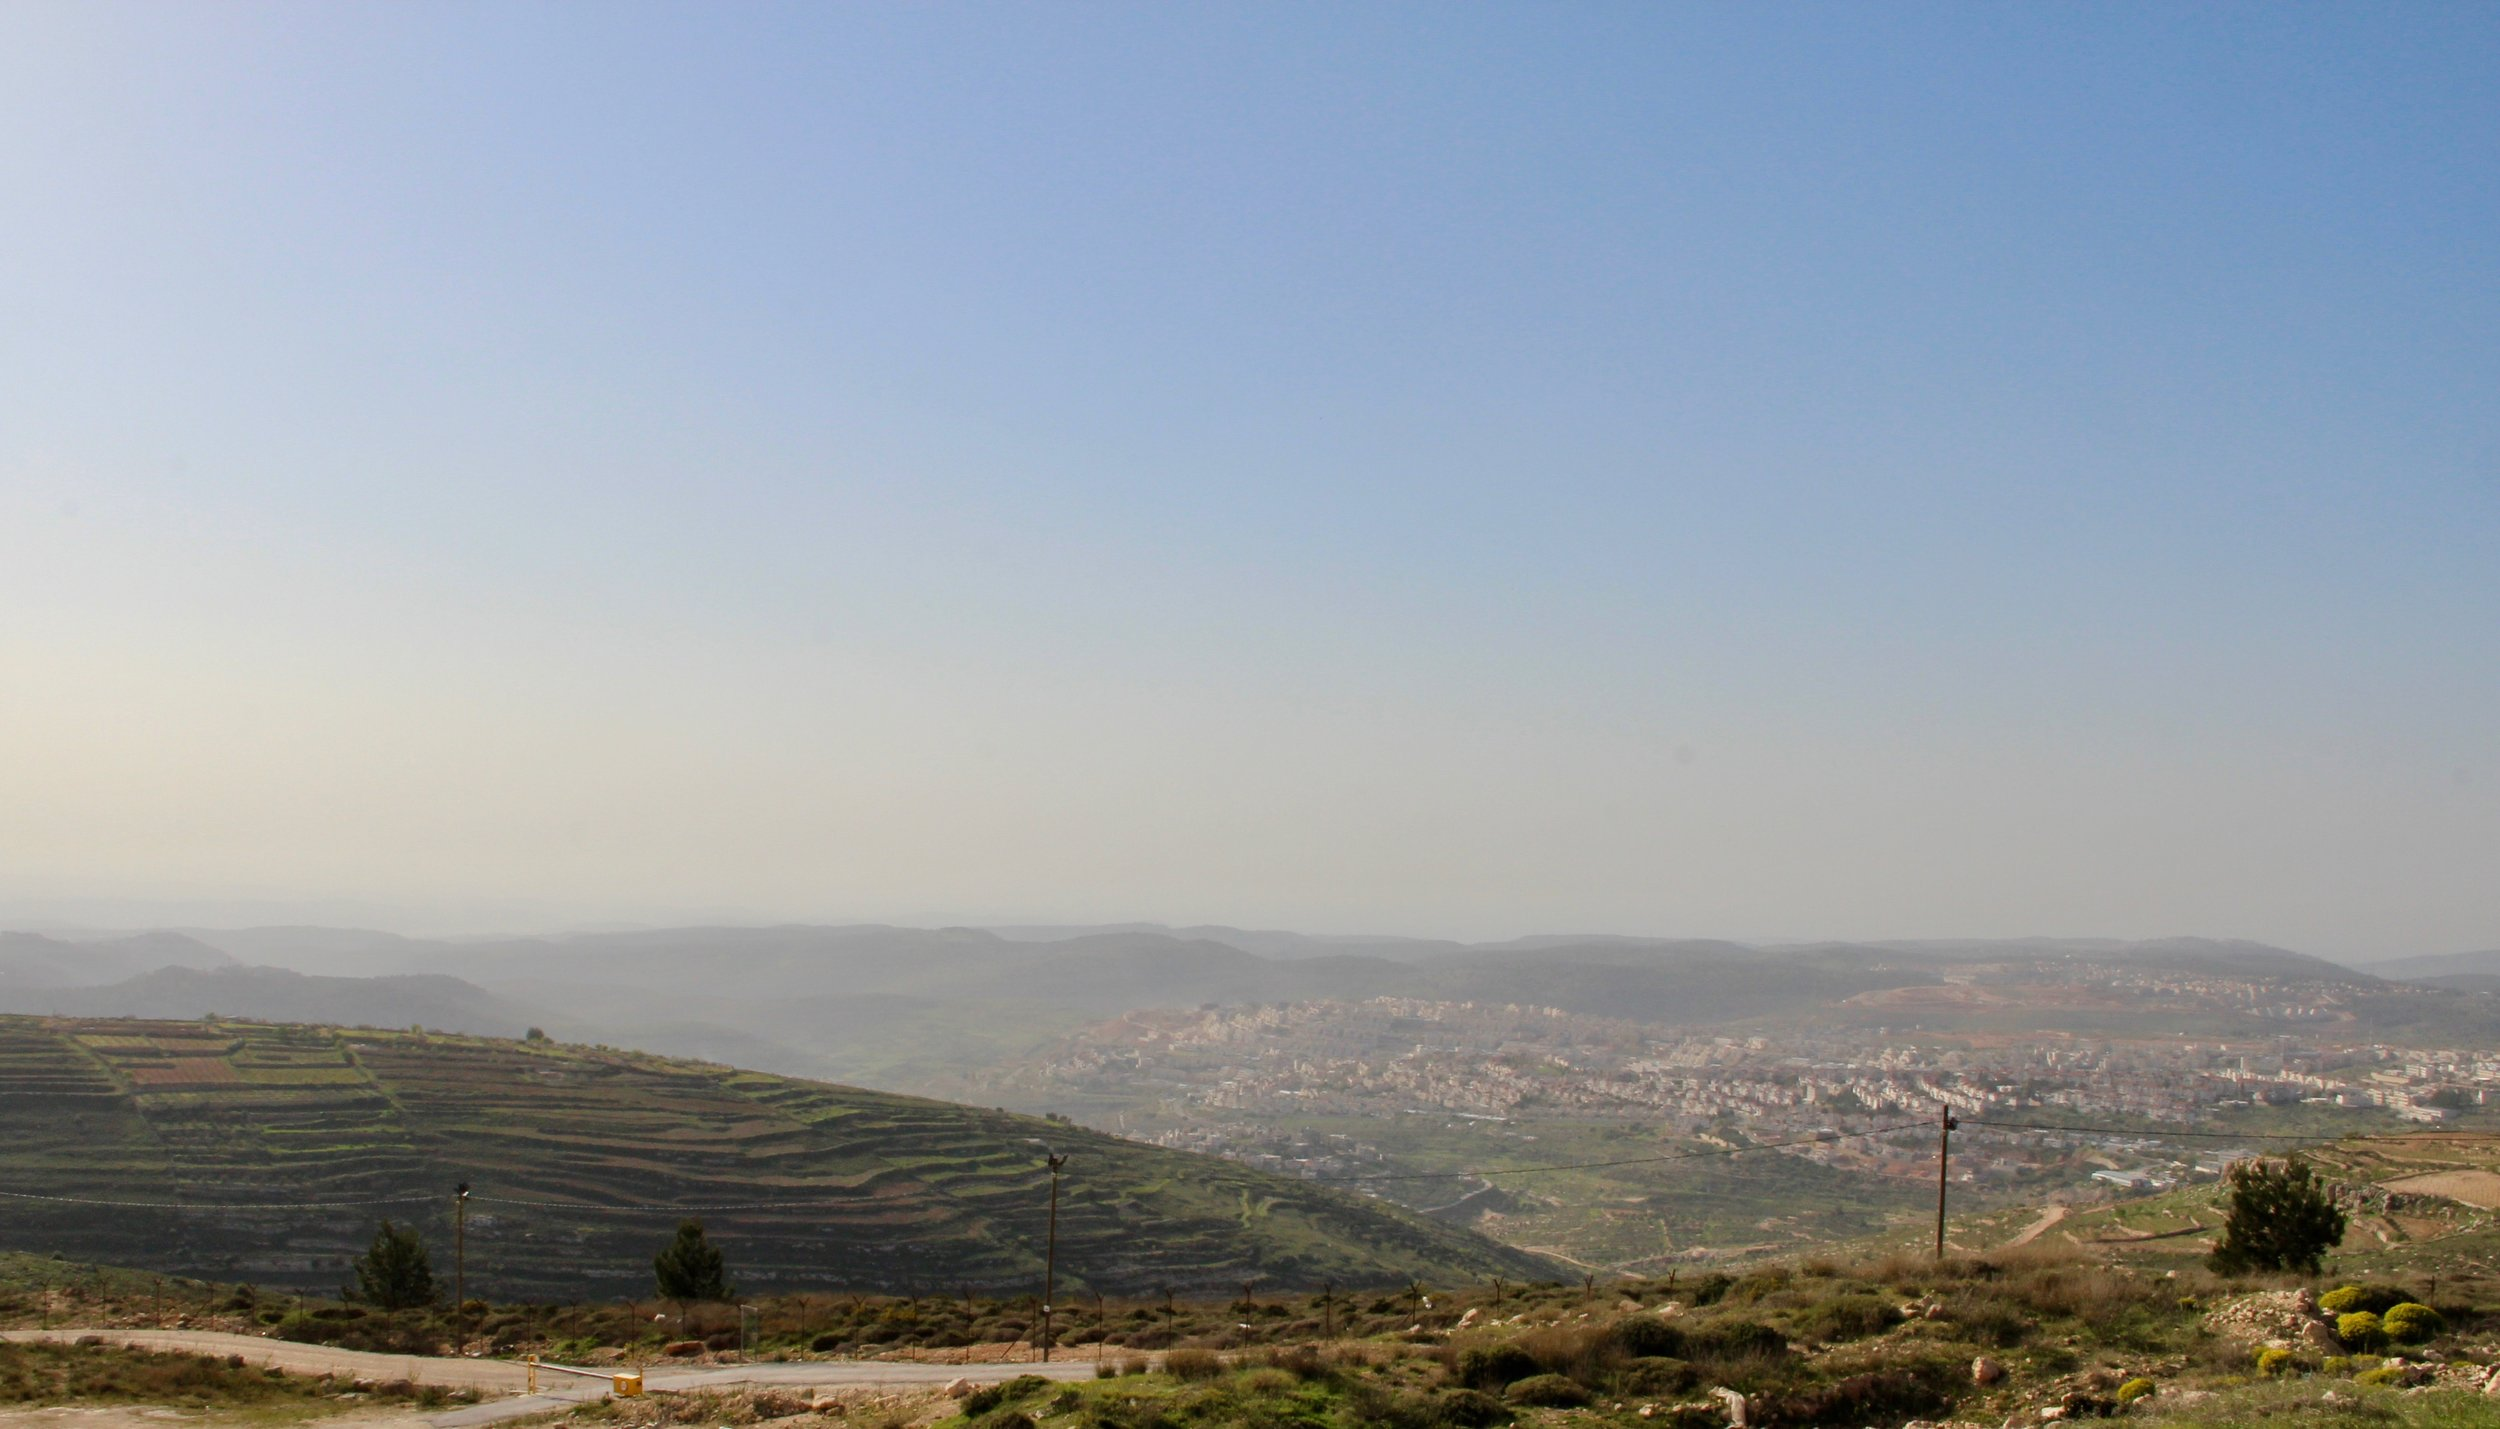 Beautiful Judea - the occupied West Bank